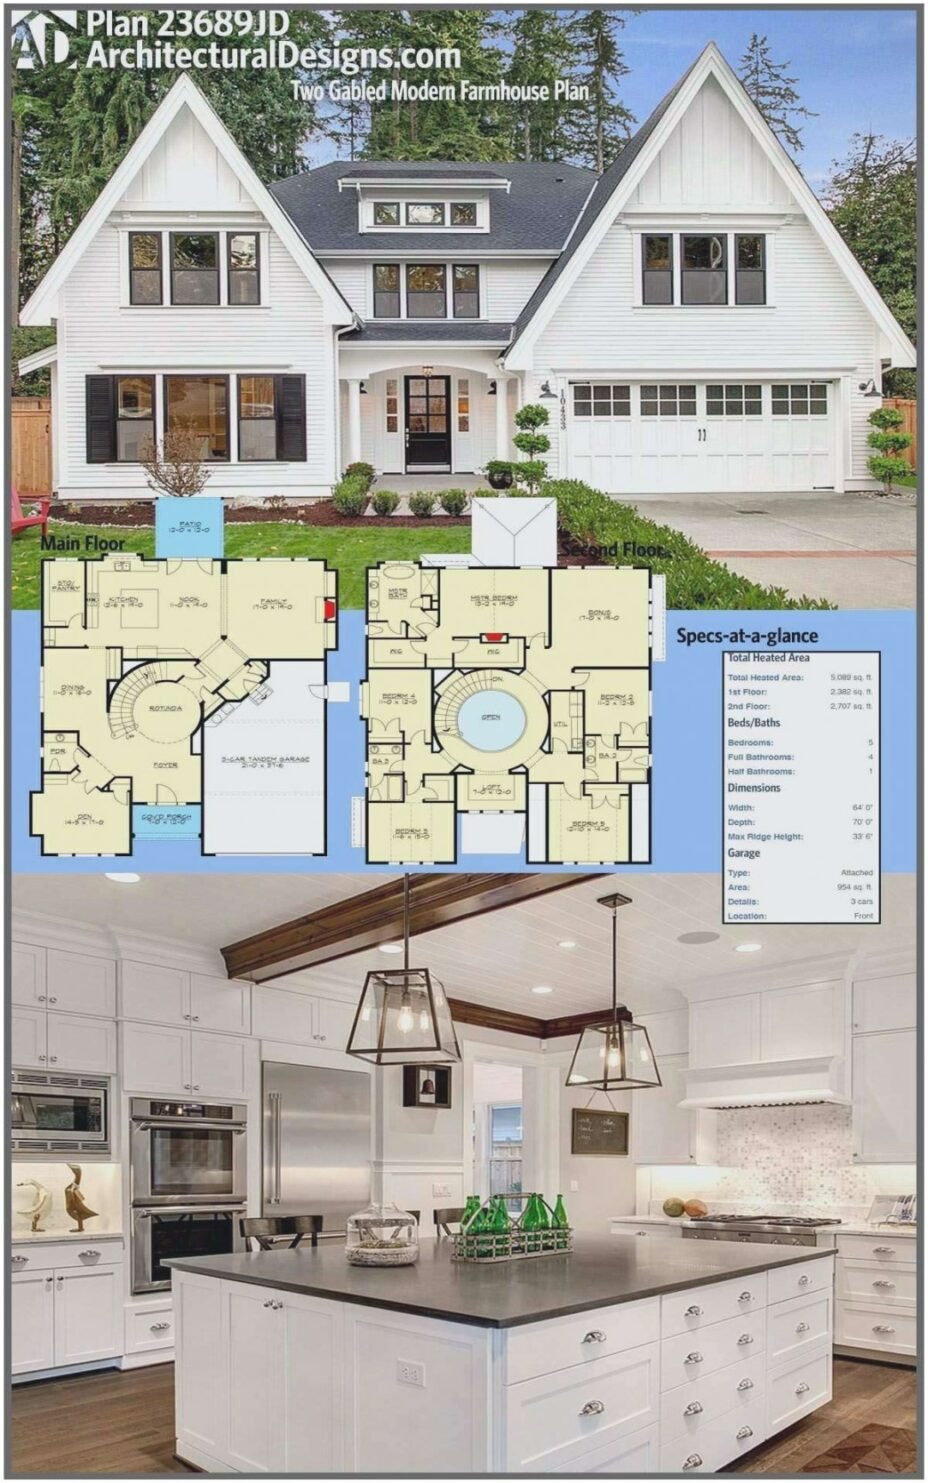 simple house design impressionnant kitchen floor plan dimensions residential of simple house design 928x1483